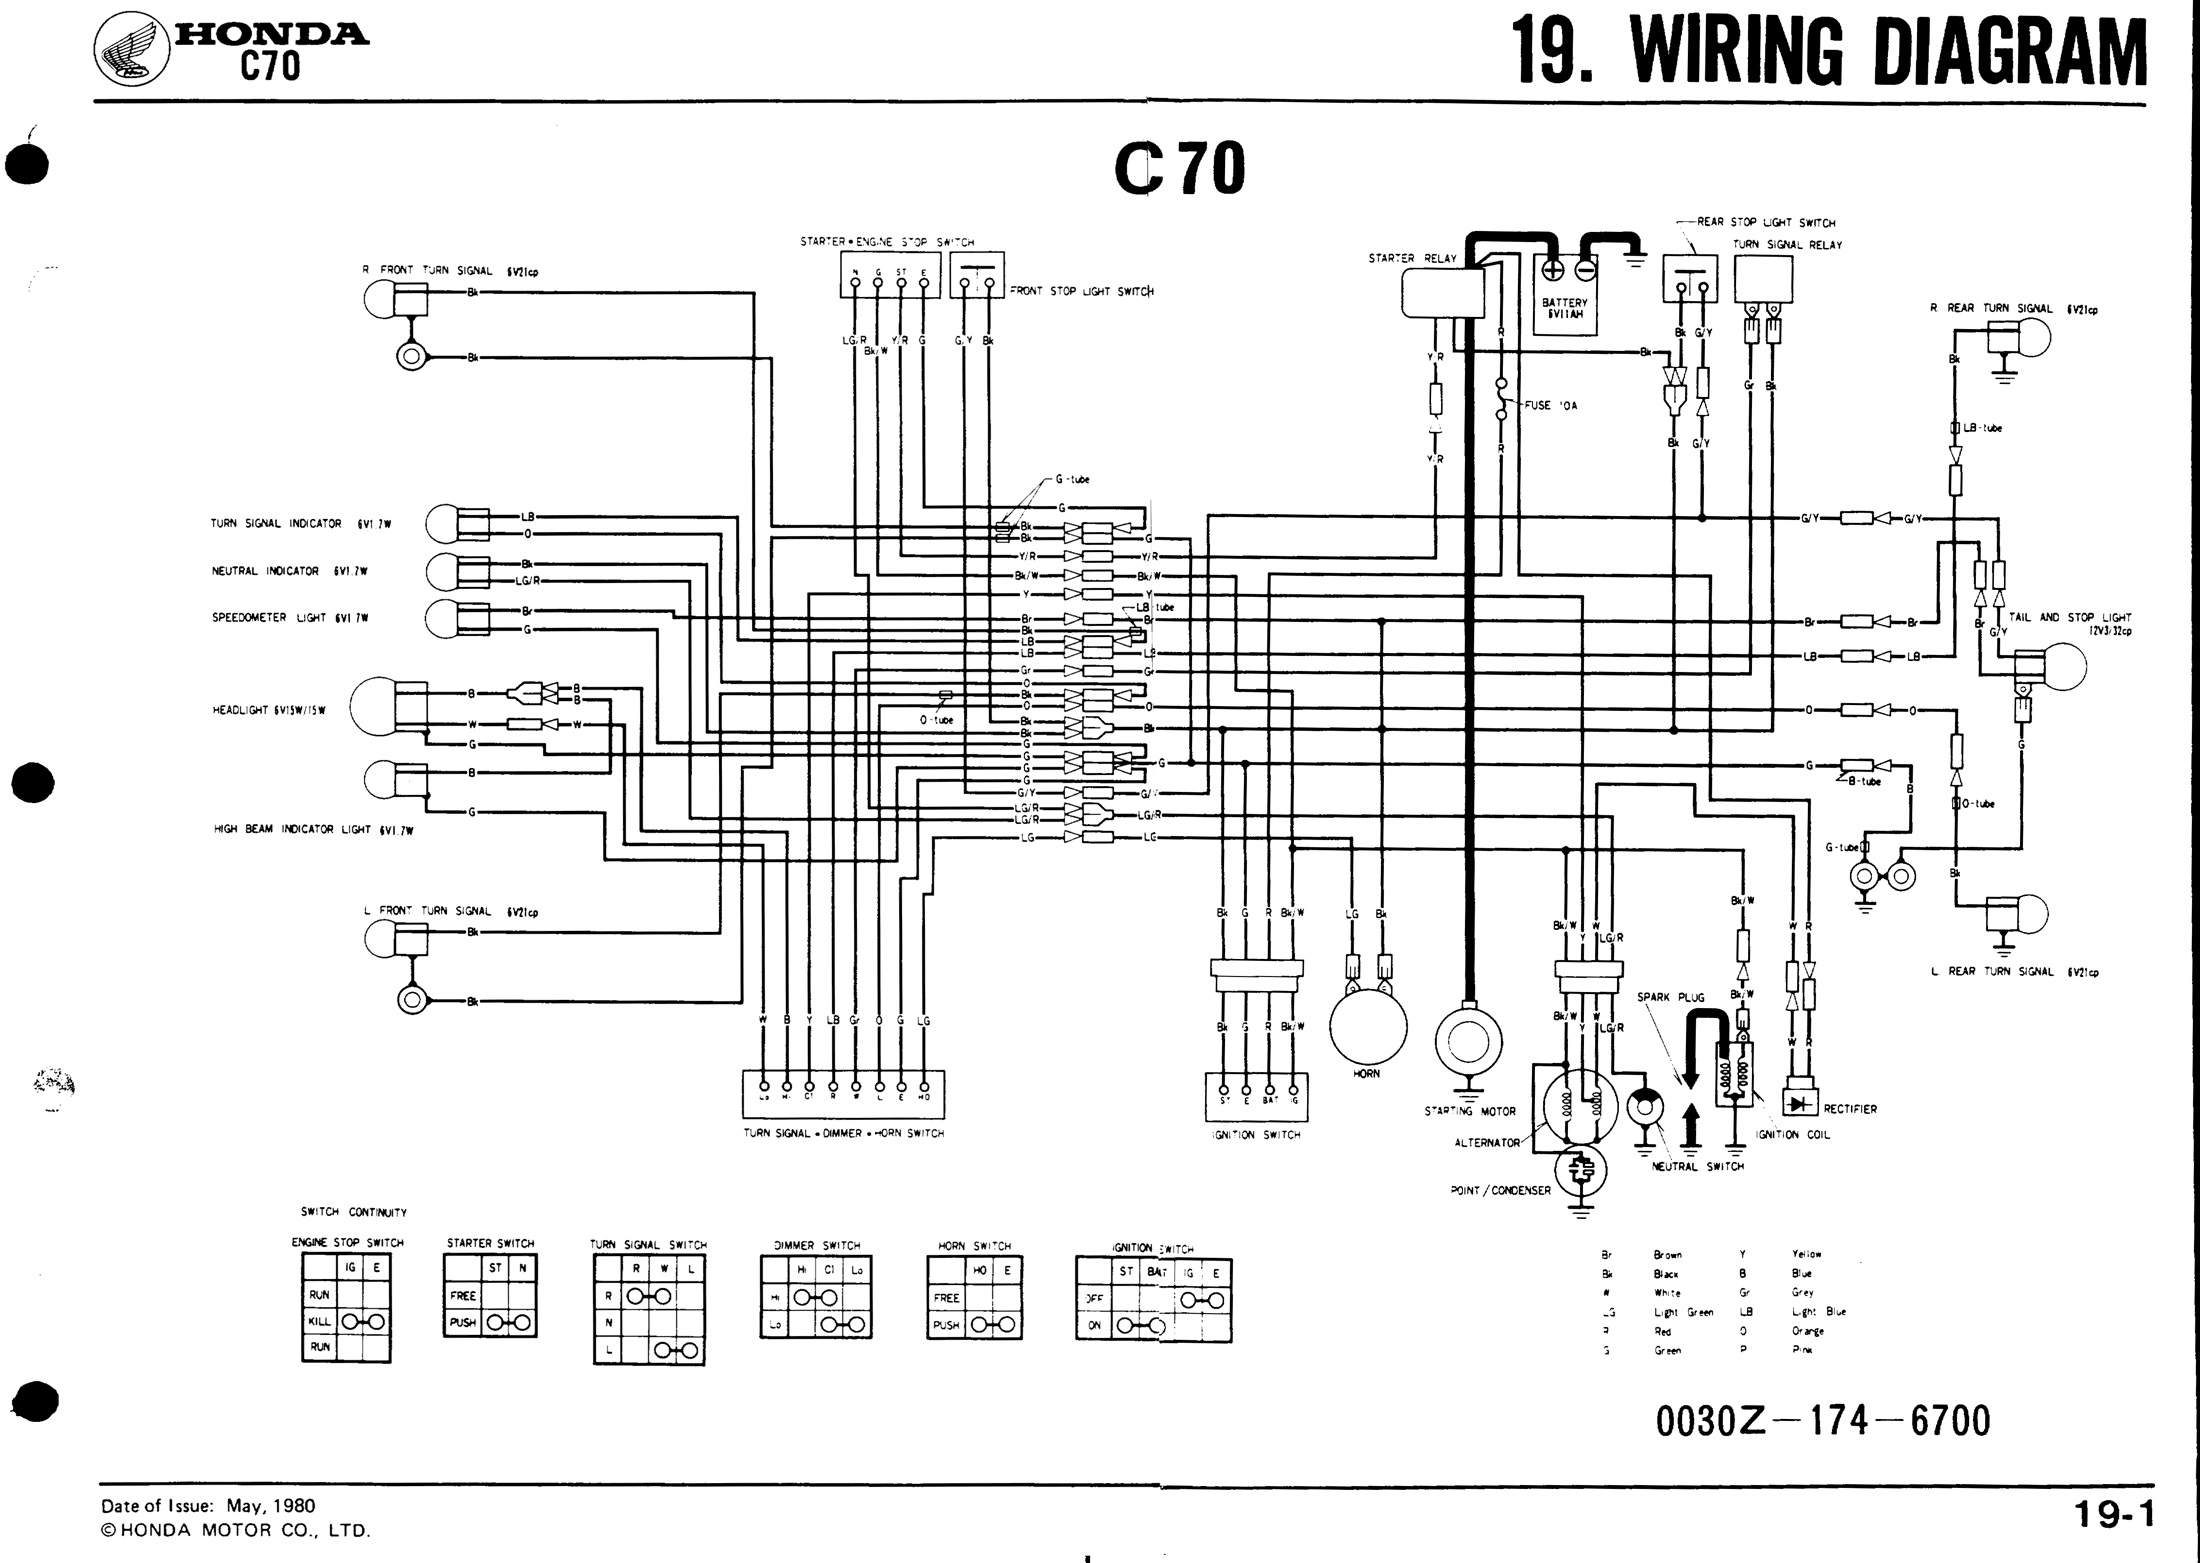 Kawasaki Z900 A4 Wiring Diagram also On 2 Stroke Mini Bike Wiring Diagram further Spacer Engine Mount 1161114230 as well Throttle Position Sensor Problem 2541938 besides 150 C70. on honda atv wiring diagram